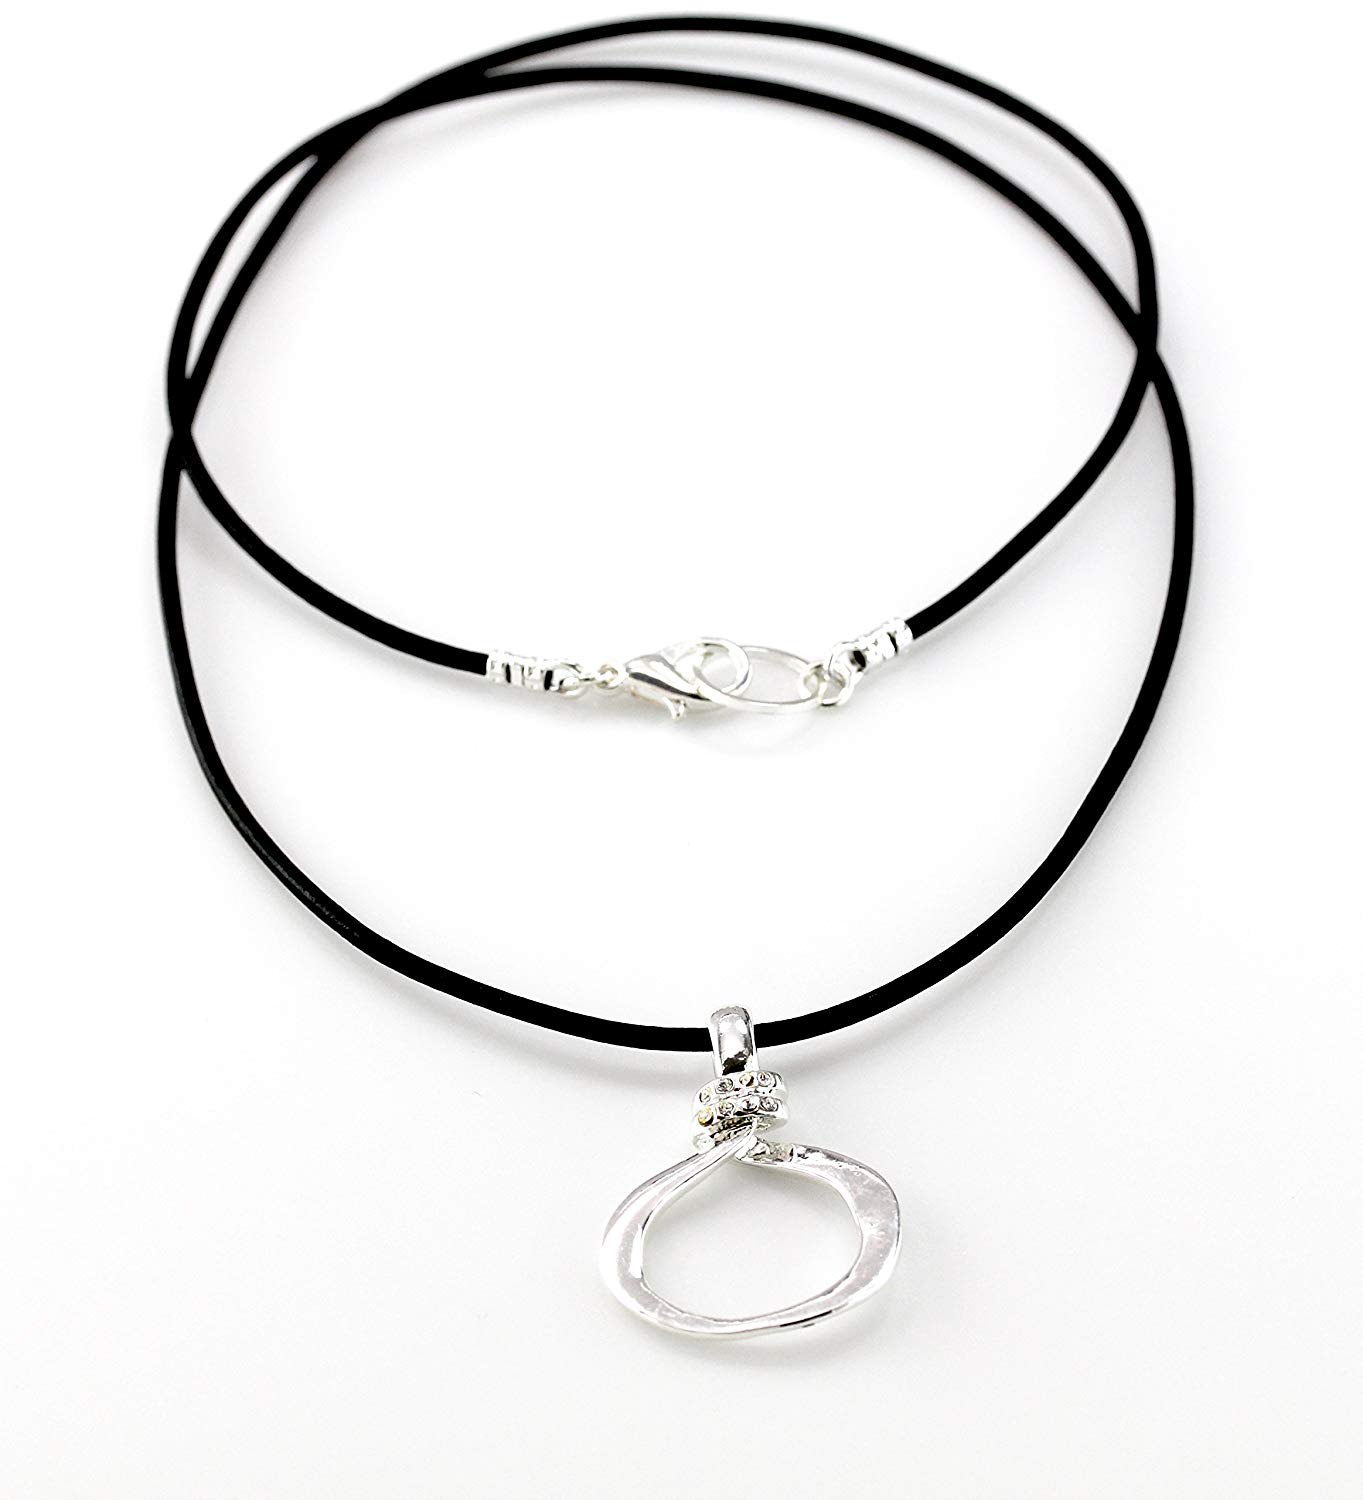 Organic Silver Eyeglass Necklace Loop with Rhinestones and Leather Cord